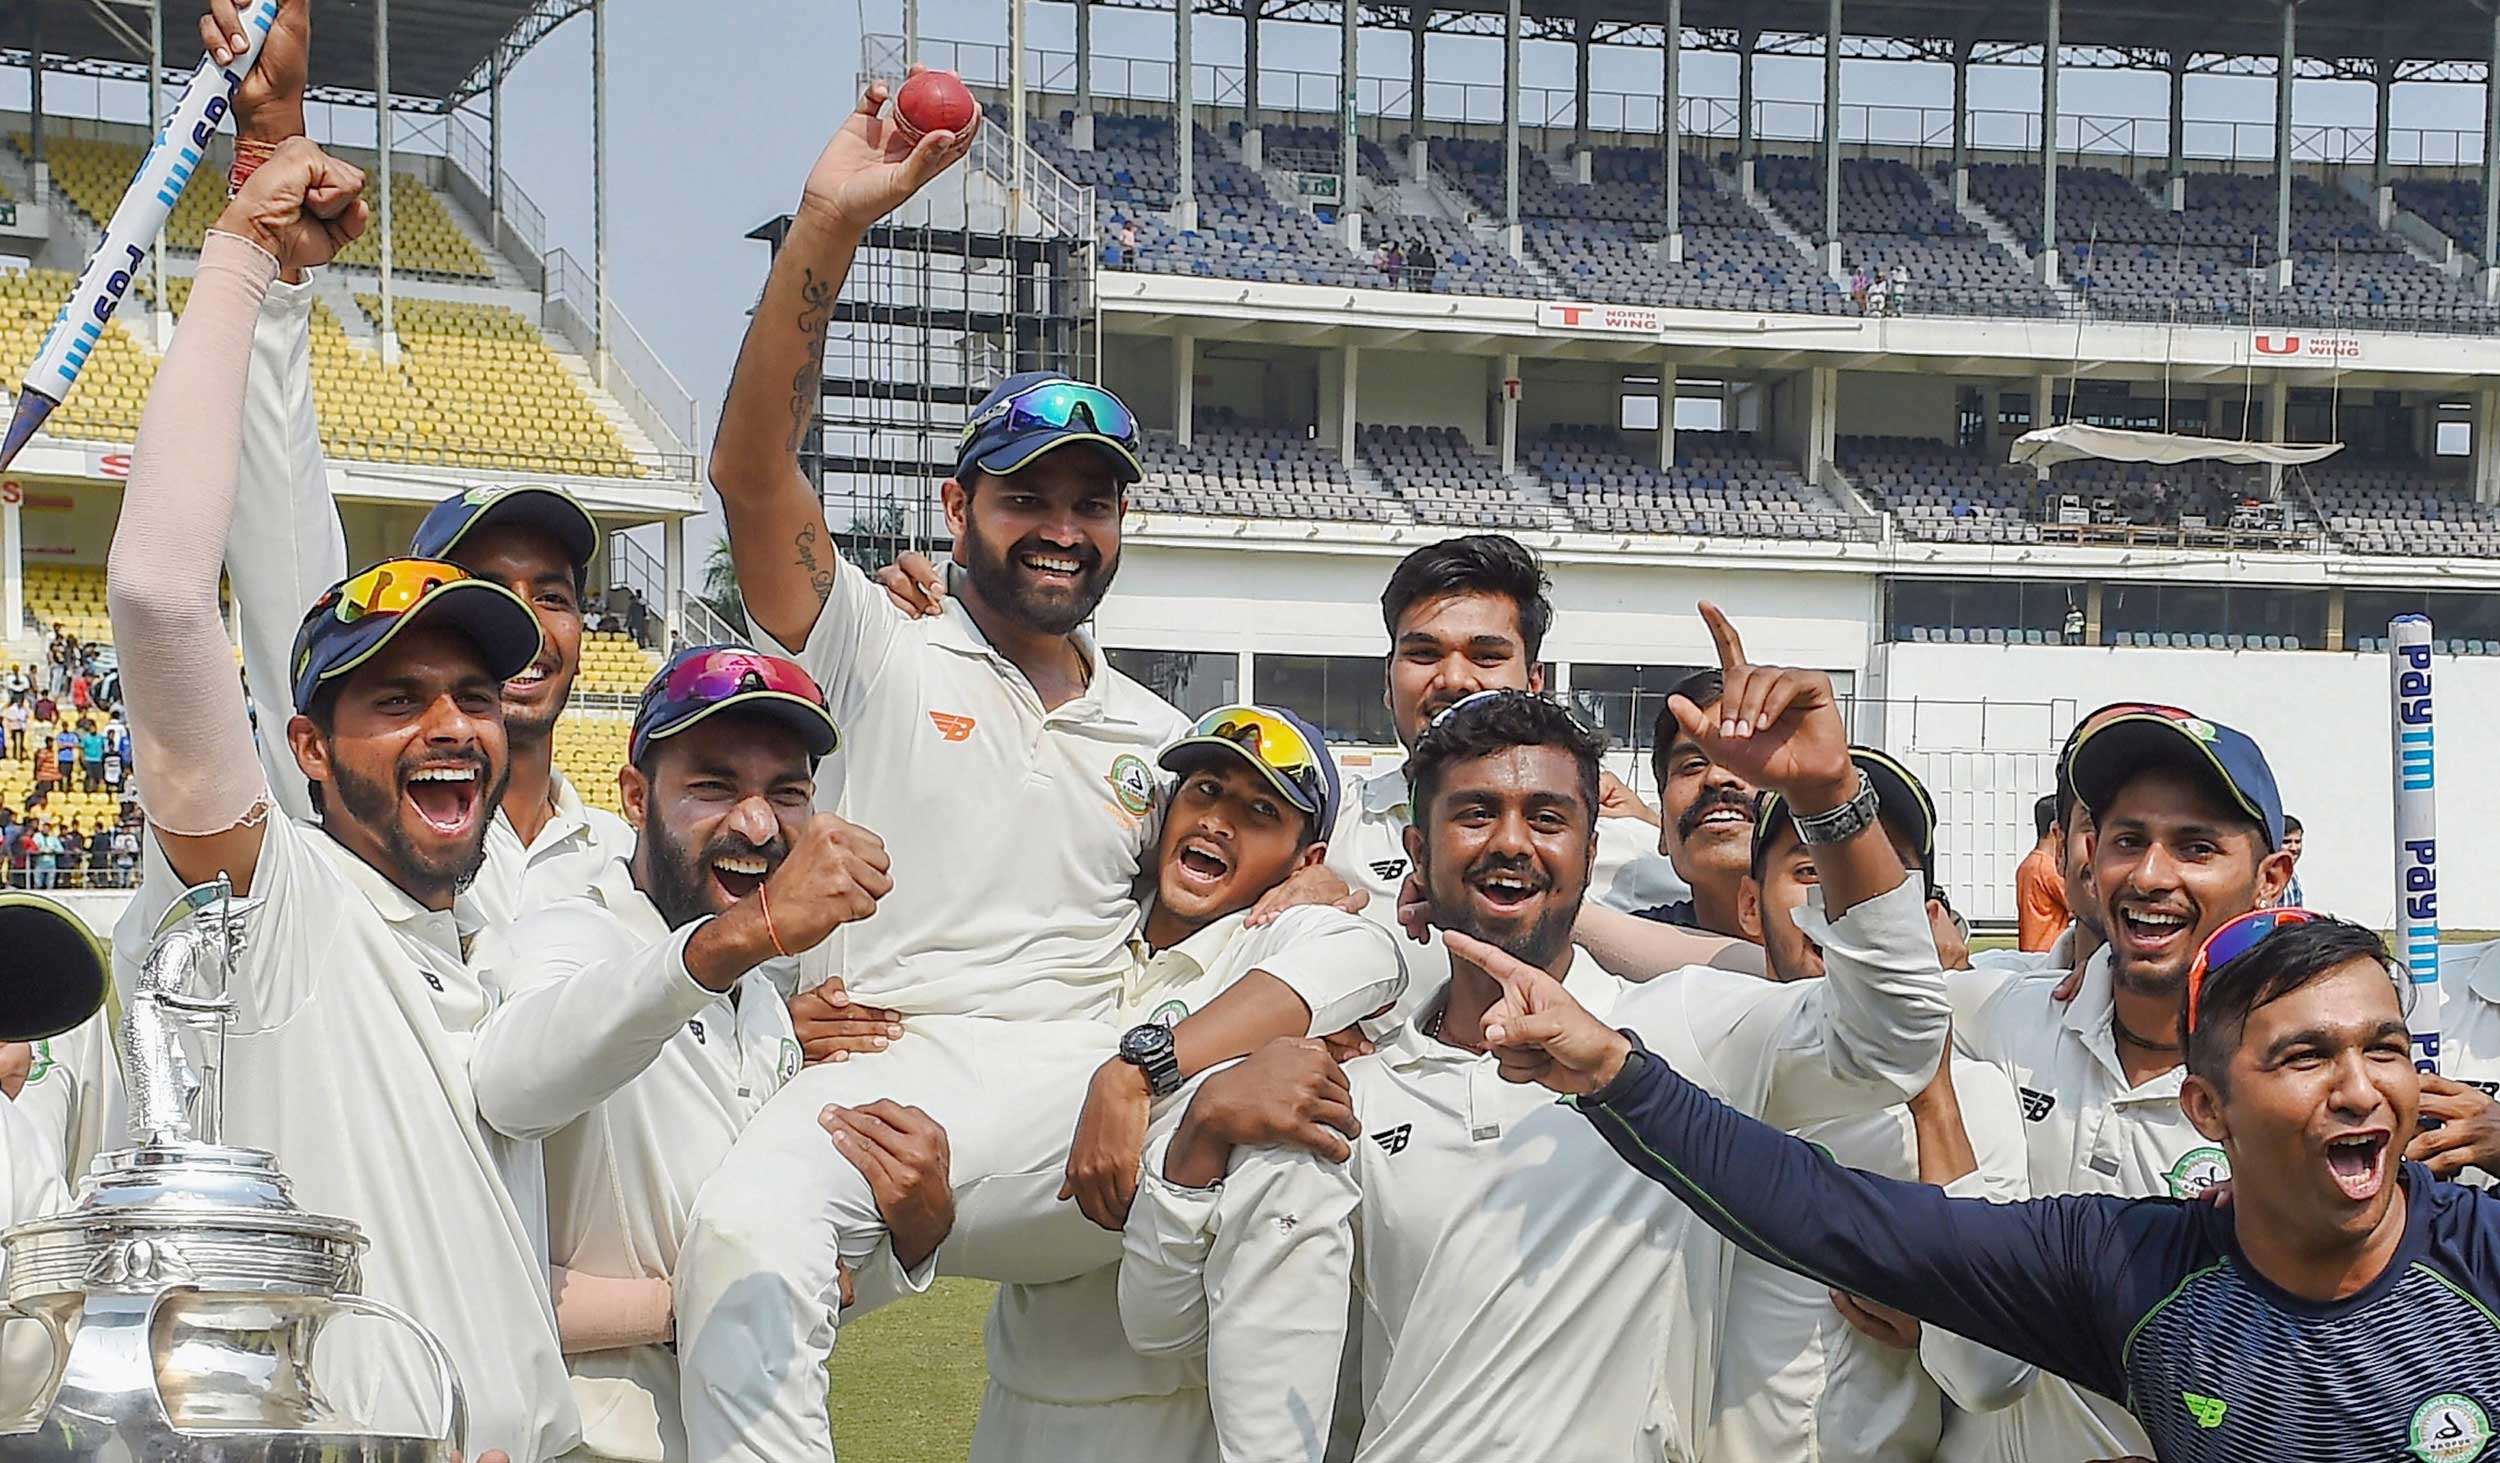 The Vidarbha cricket team won with a comfortable margin of 78 runs against the much-fancied Saurashtra in the Ranji Trophy final.